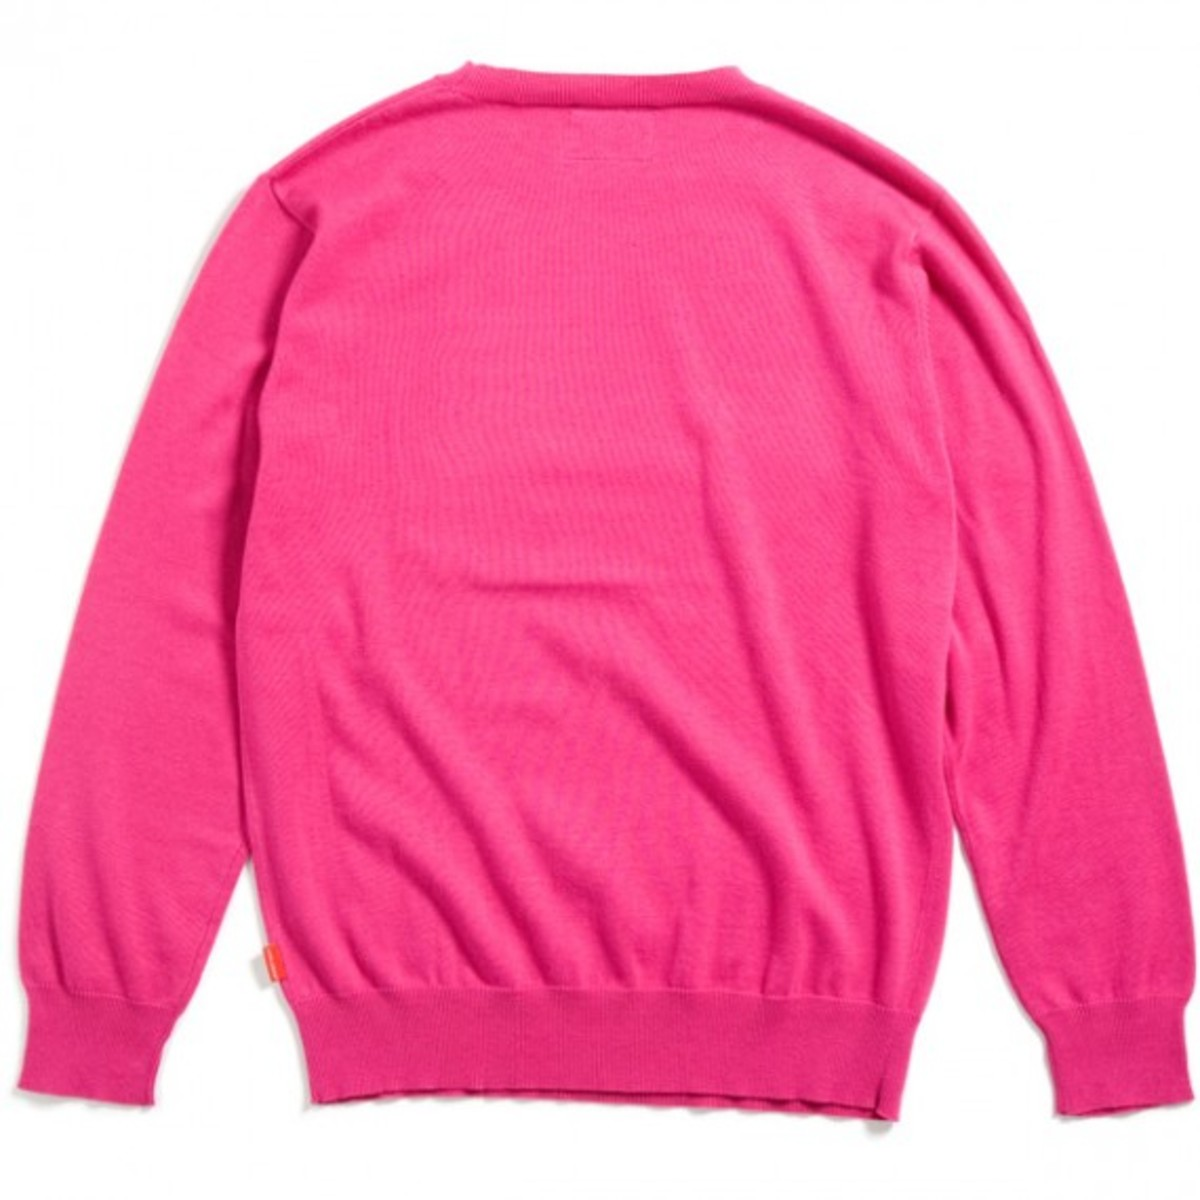 Paid in Full Crew Neck Sweater Pink 2